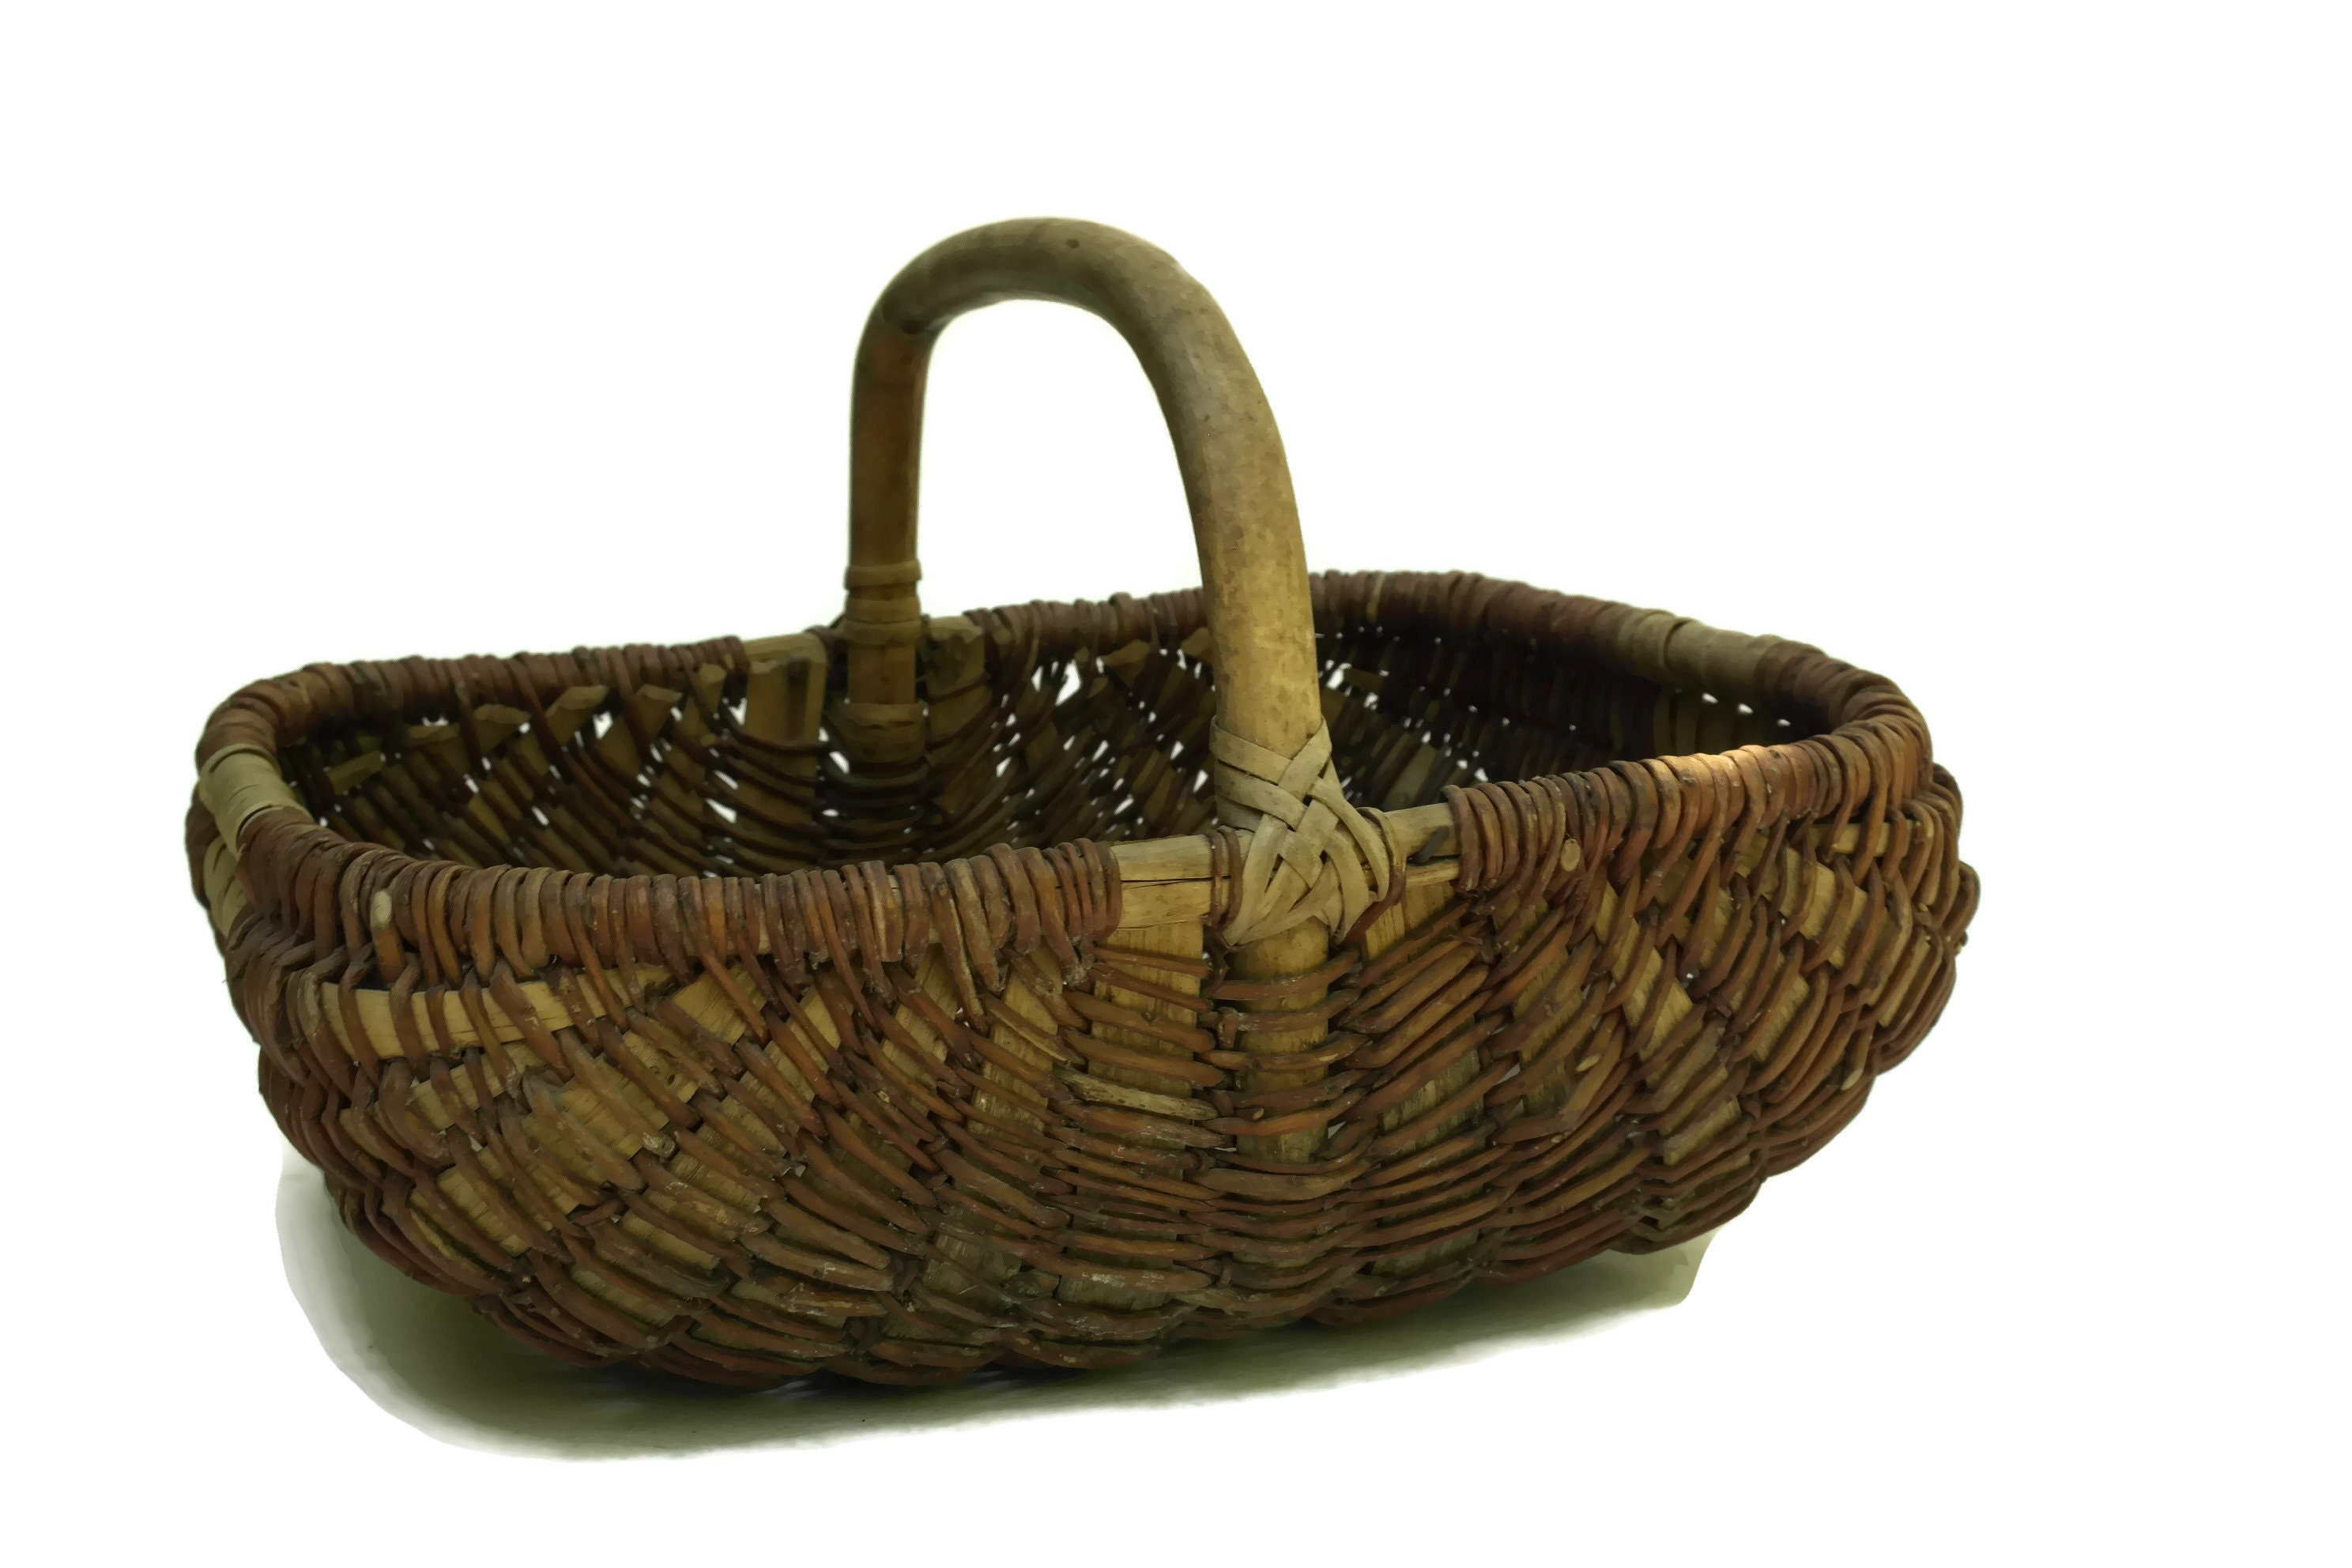 French Vintage Hand Woven Basket Rustic Country Kitchen Decor Gardening Gift